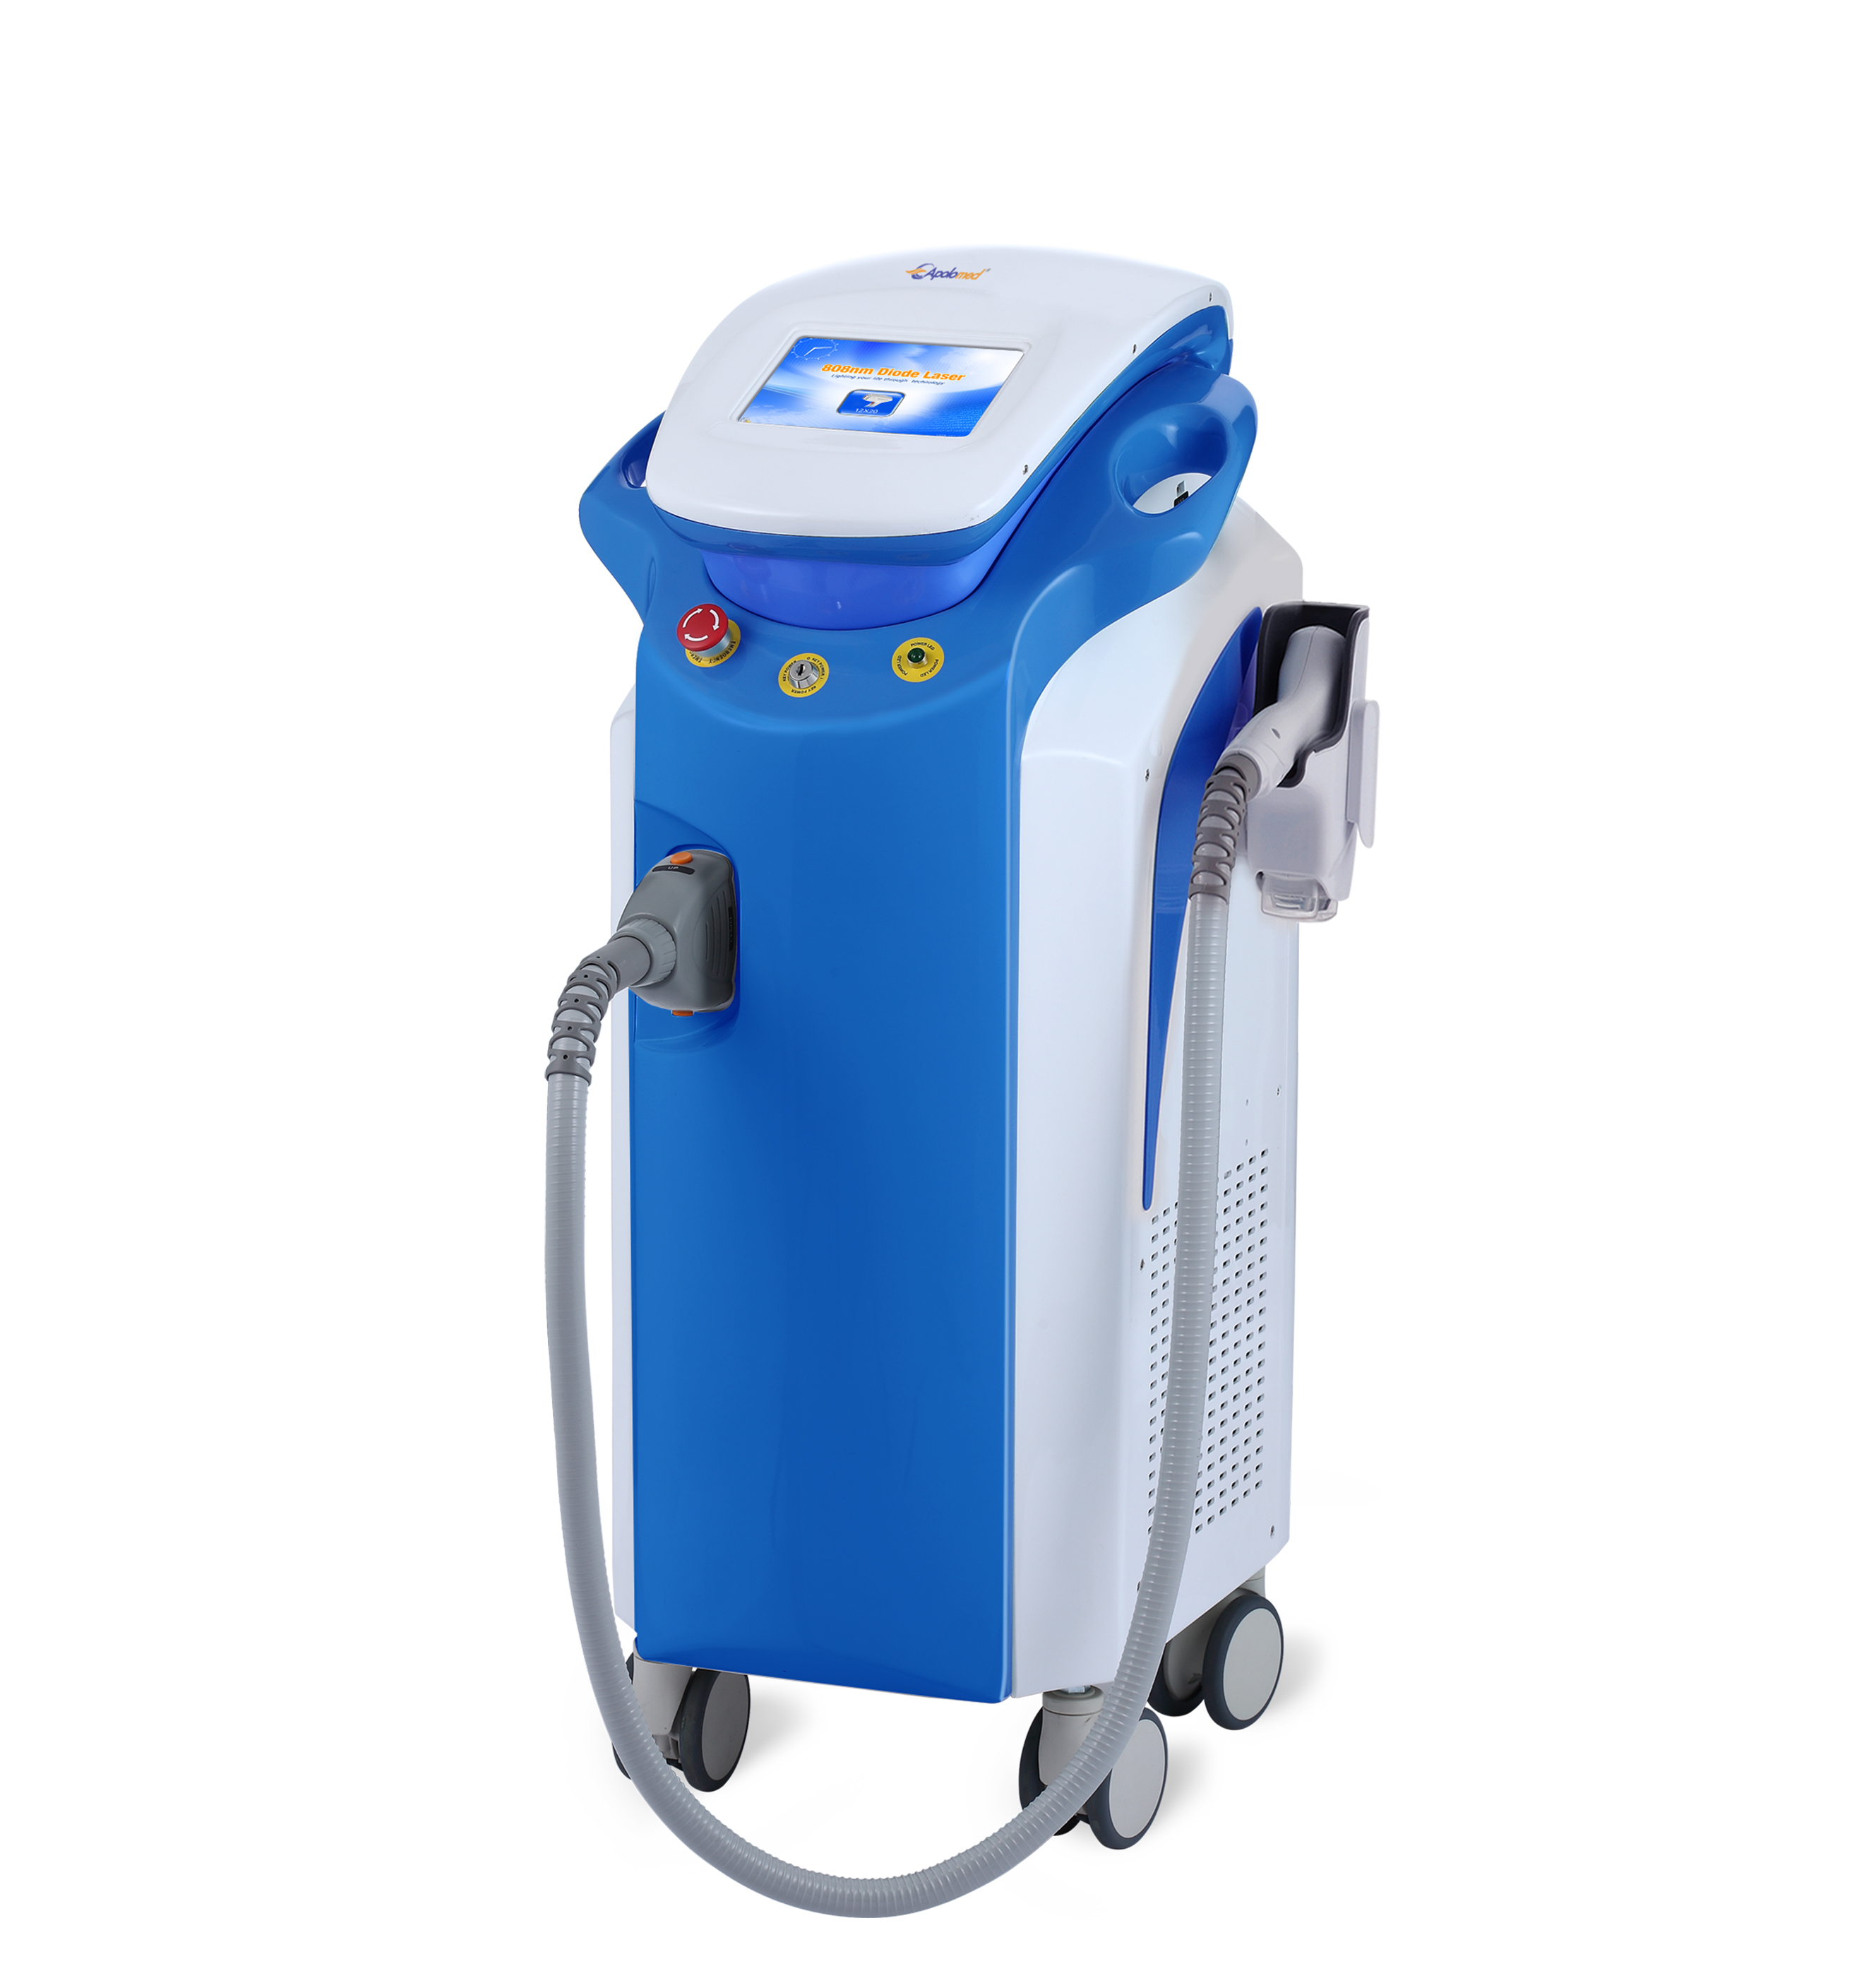 OEM China Skin Rejuvenation Pdt Led Face Light Therapy Mask -